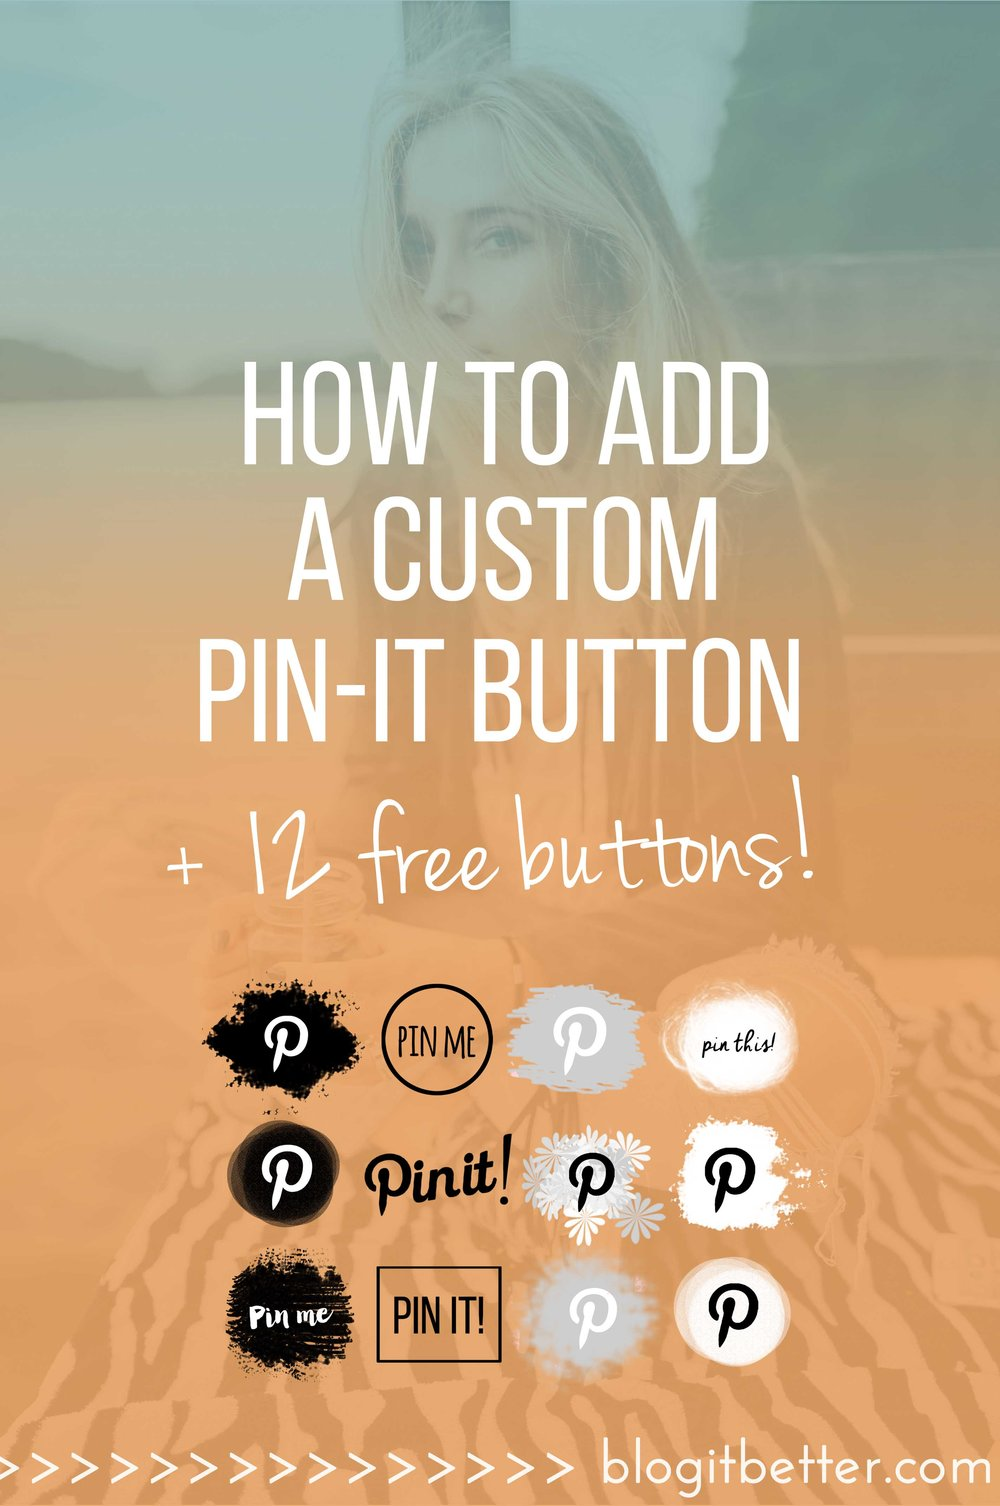 >>FREE Pinterest pin-it buttons<< How to easily add a custom Pinterest pin-it button to your blog on Squarespace or Wordpress! #pinterest #pinteresttips #pinterestforbusiness #pinterestforbloggers #socialmediatips #howtousepinterest #pinterestseo #pinteresttraffic #pinitbutton #wordpresstips #squarespacetips #blogitbetter #bloggingtips